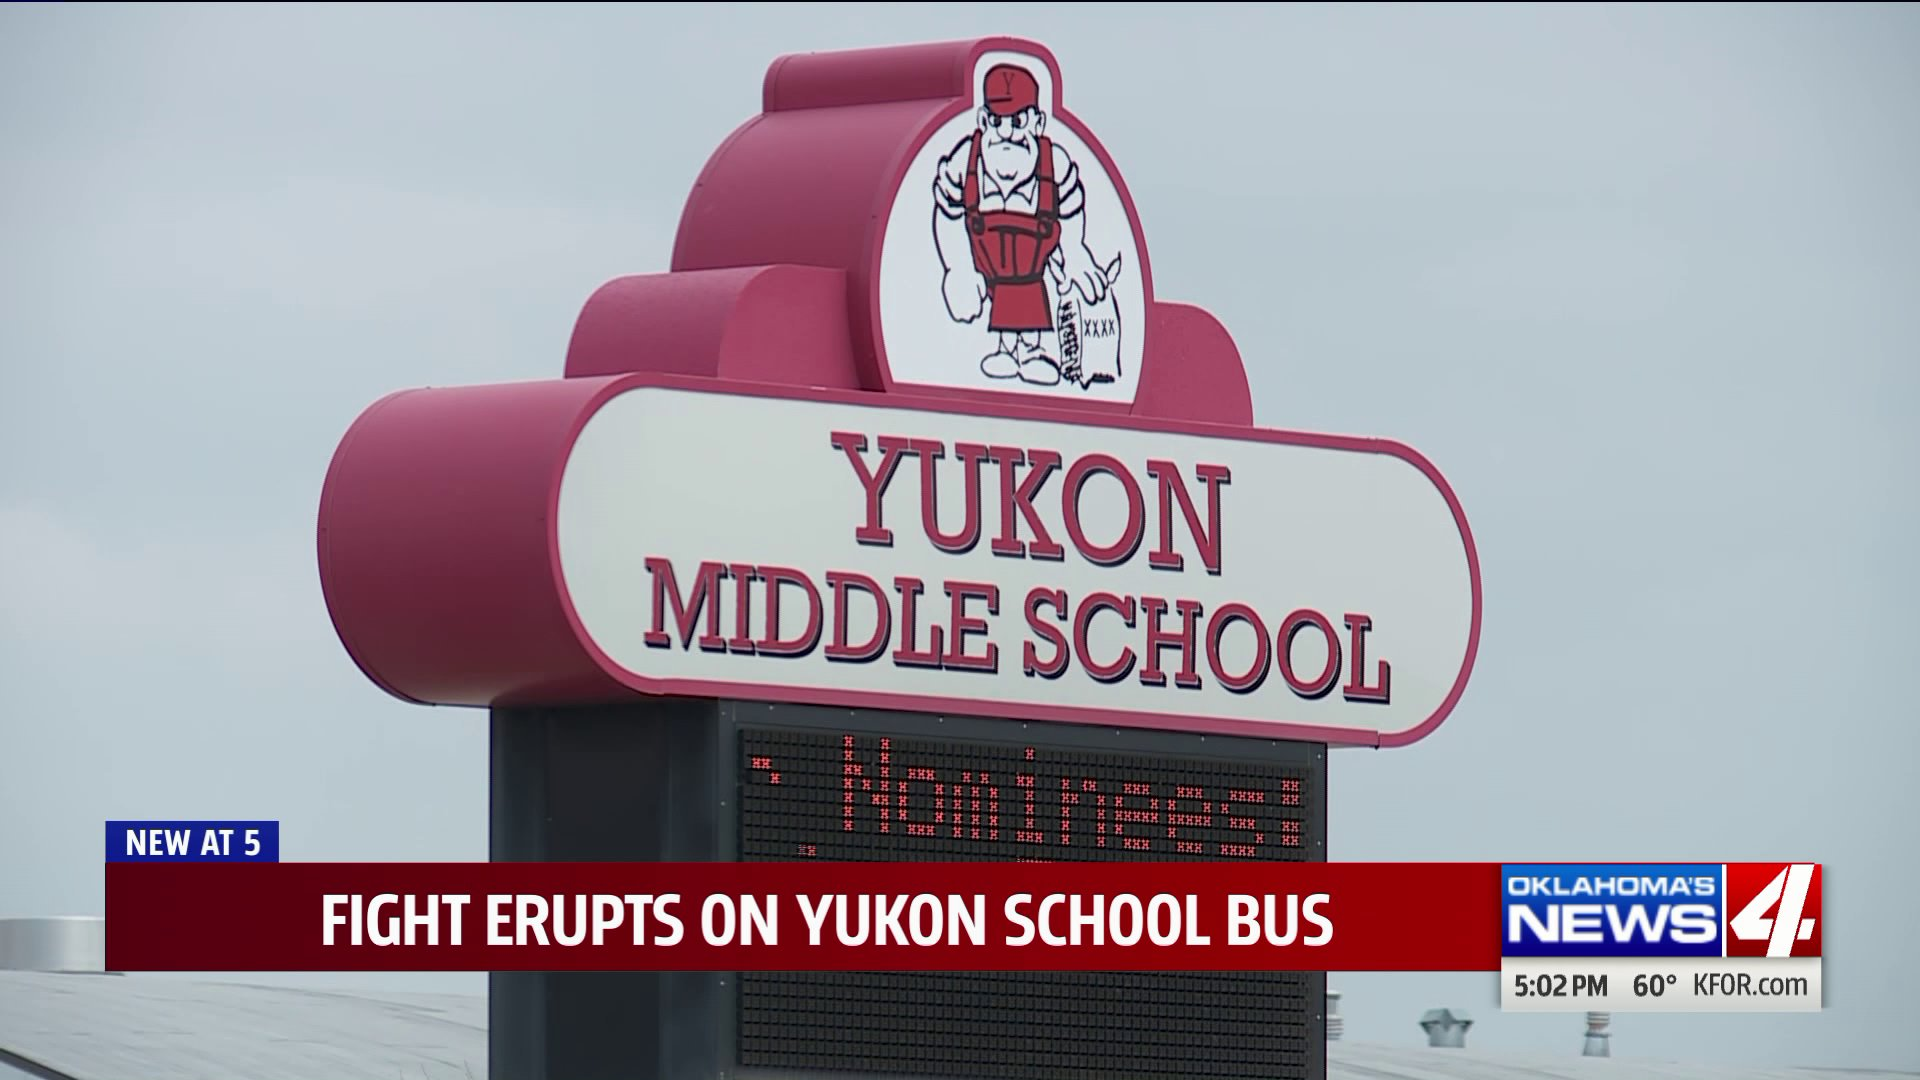 Yukon middle school sign